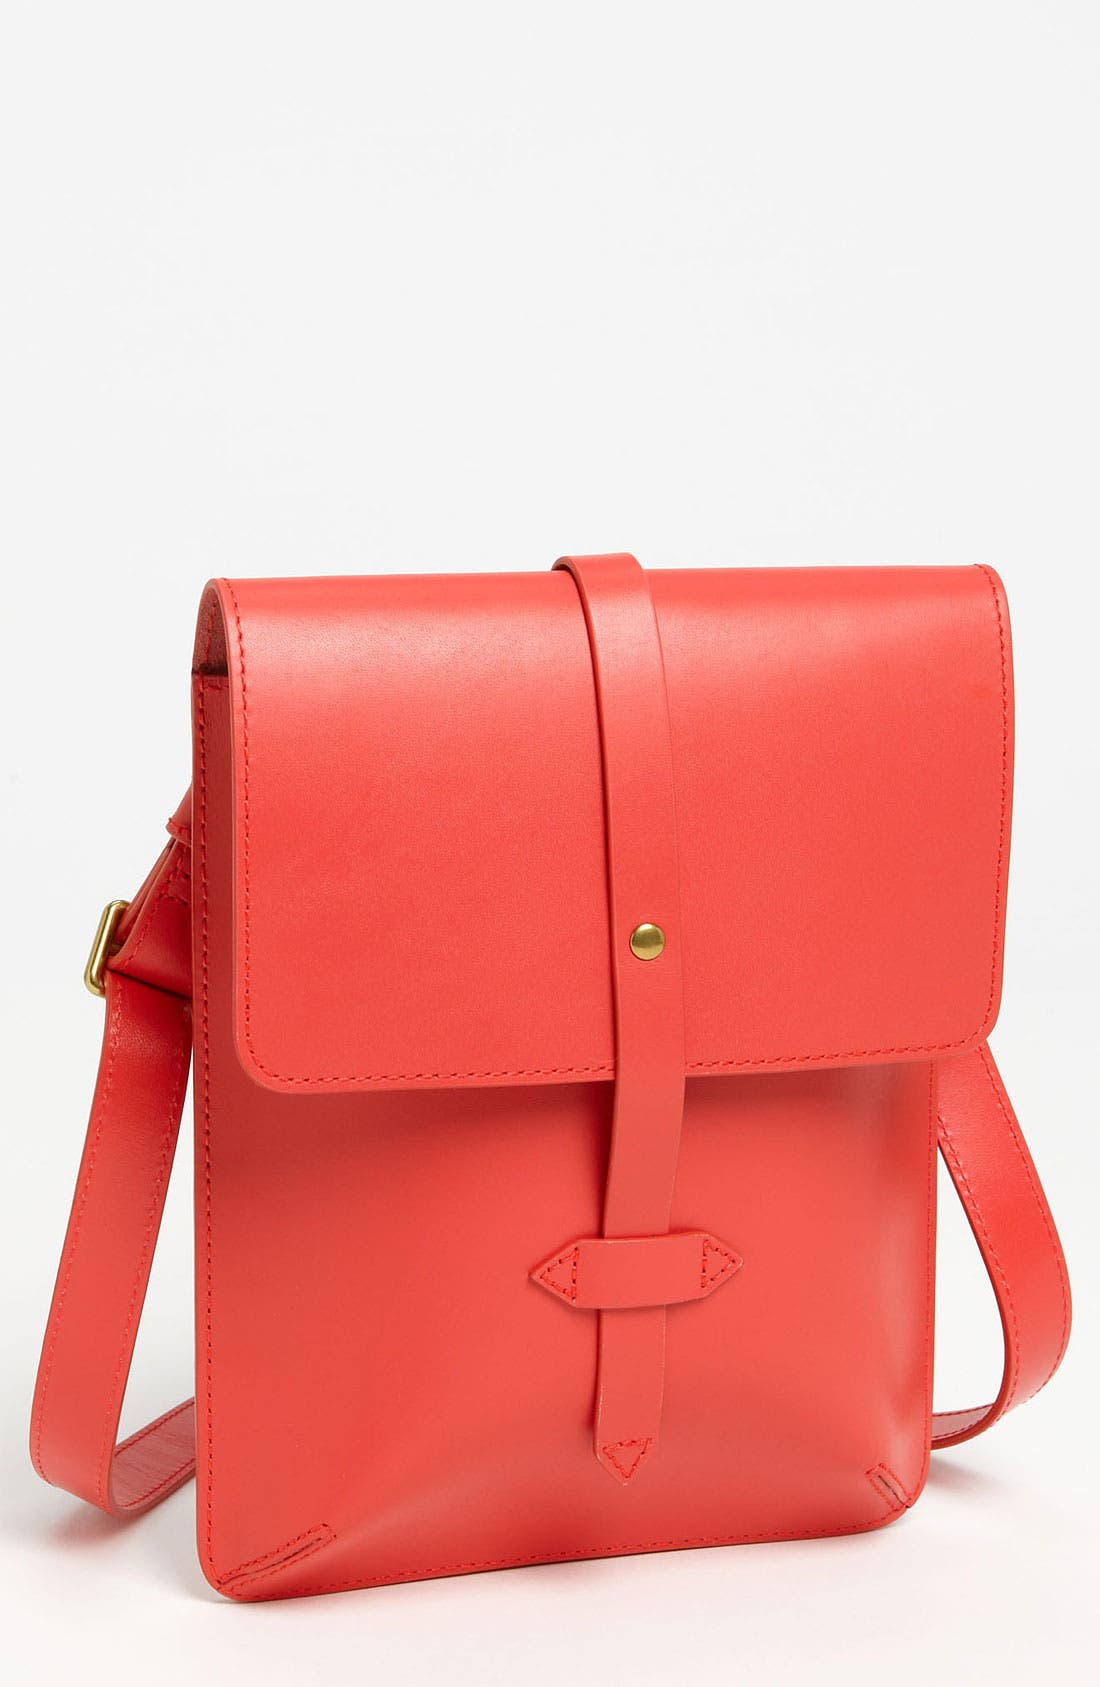 Main Image - IIIBeCa By Joy Gryson 'Chambers Street' Crossbody Bag